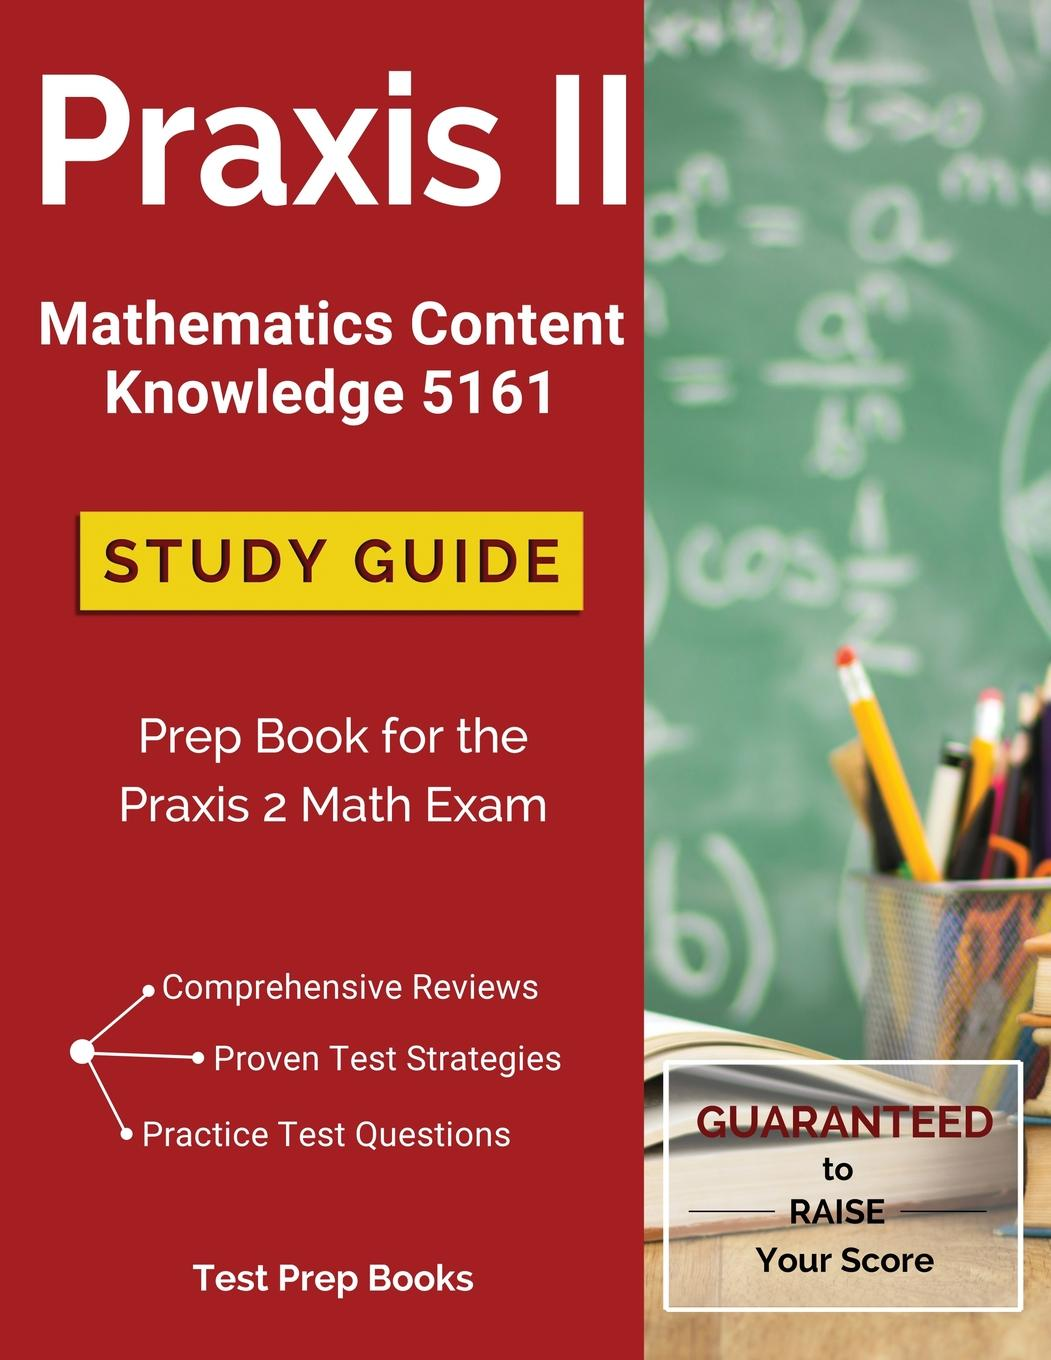 praxis ii mathematics content knowledge 5161 study guide prep book rh walmart com praxis 2 study guide for elementary education praxis 2 study guide quizlet